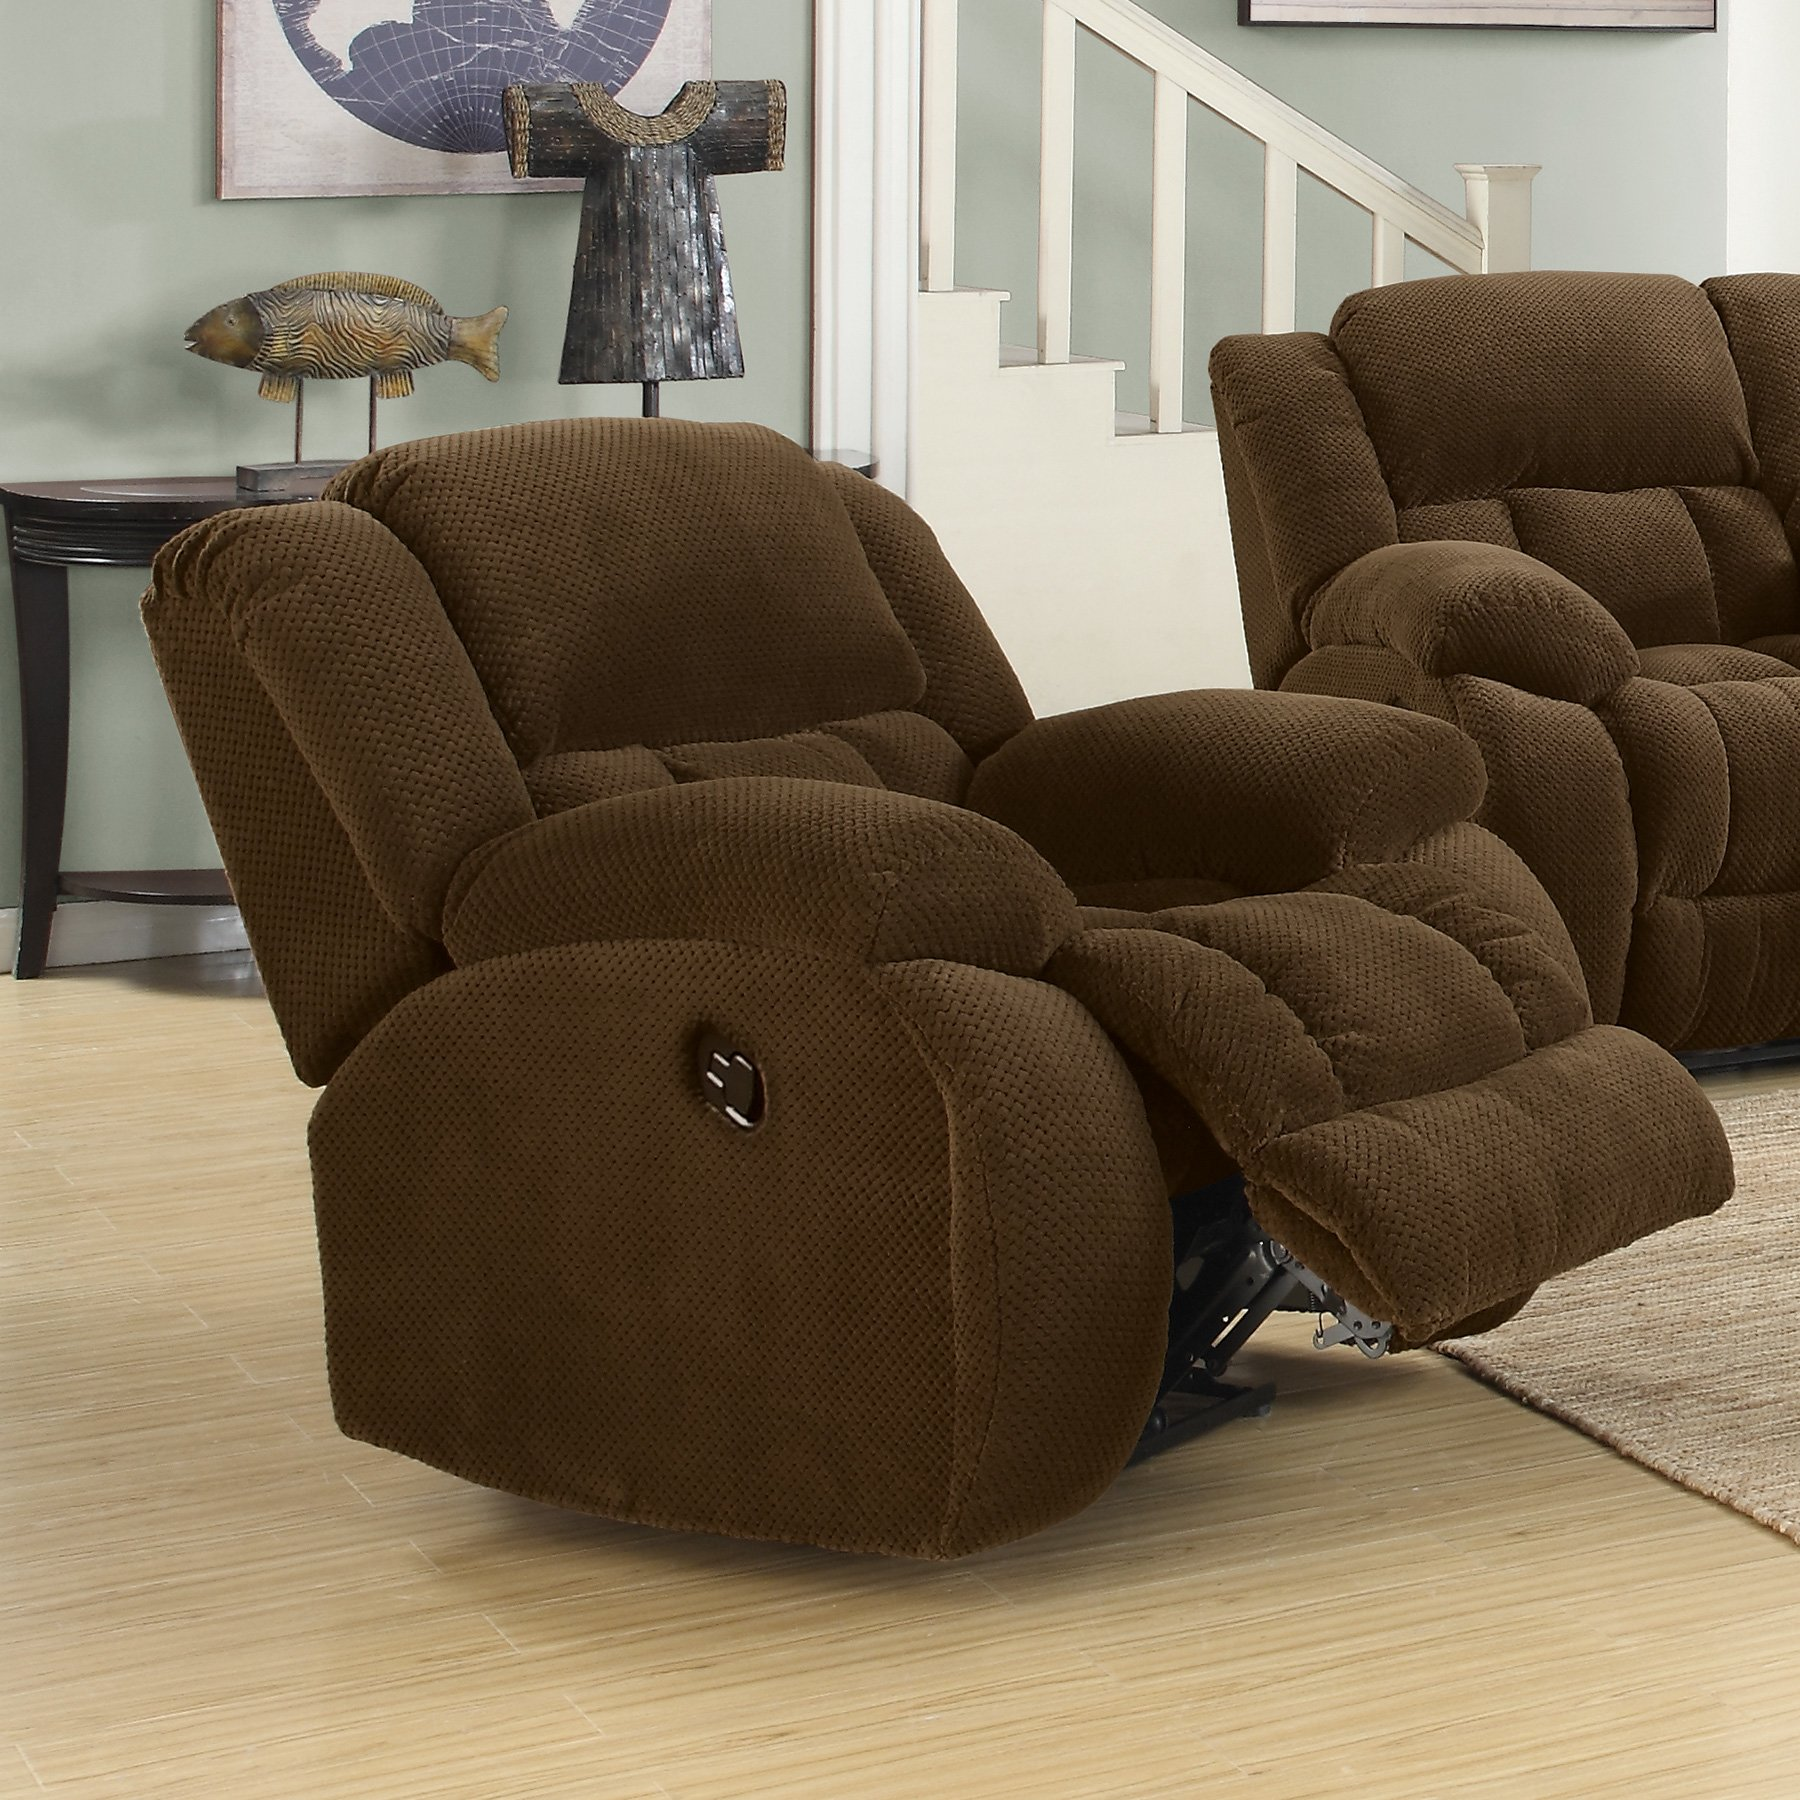 Glider Recliner | Recliner Glider Chair Nursery | Cheap Glider Recliner : best reclining glider for nursery - islam-shia.org